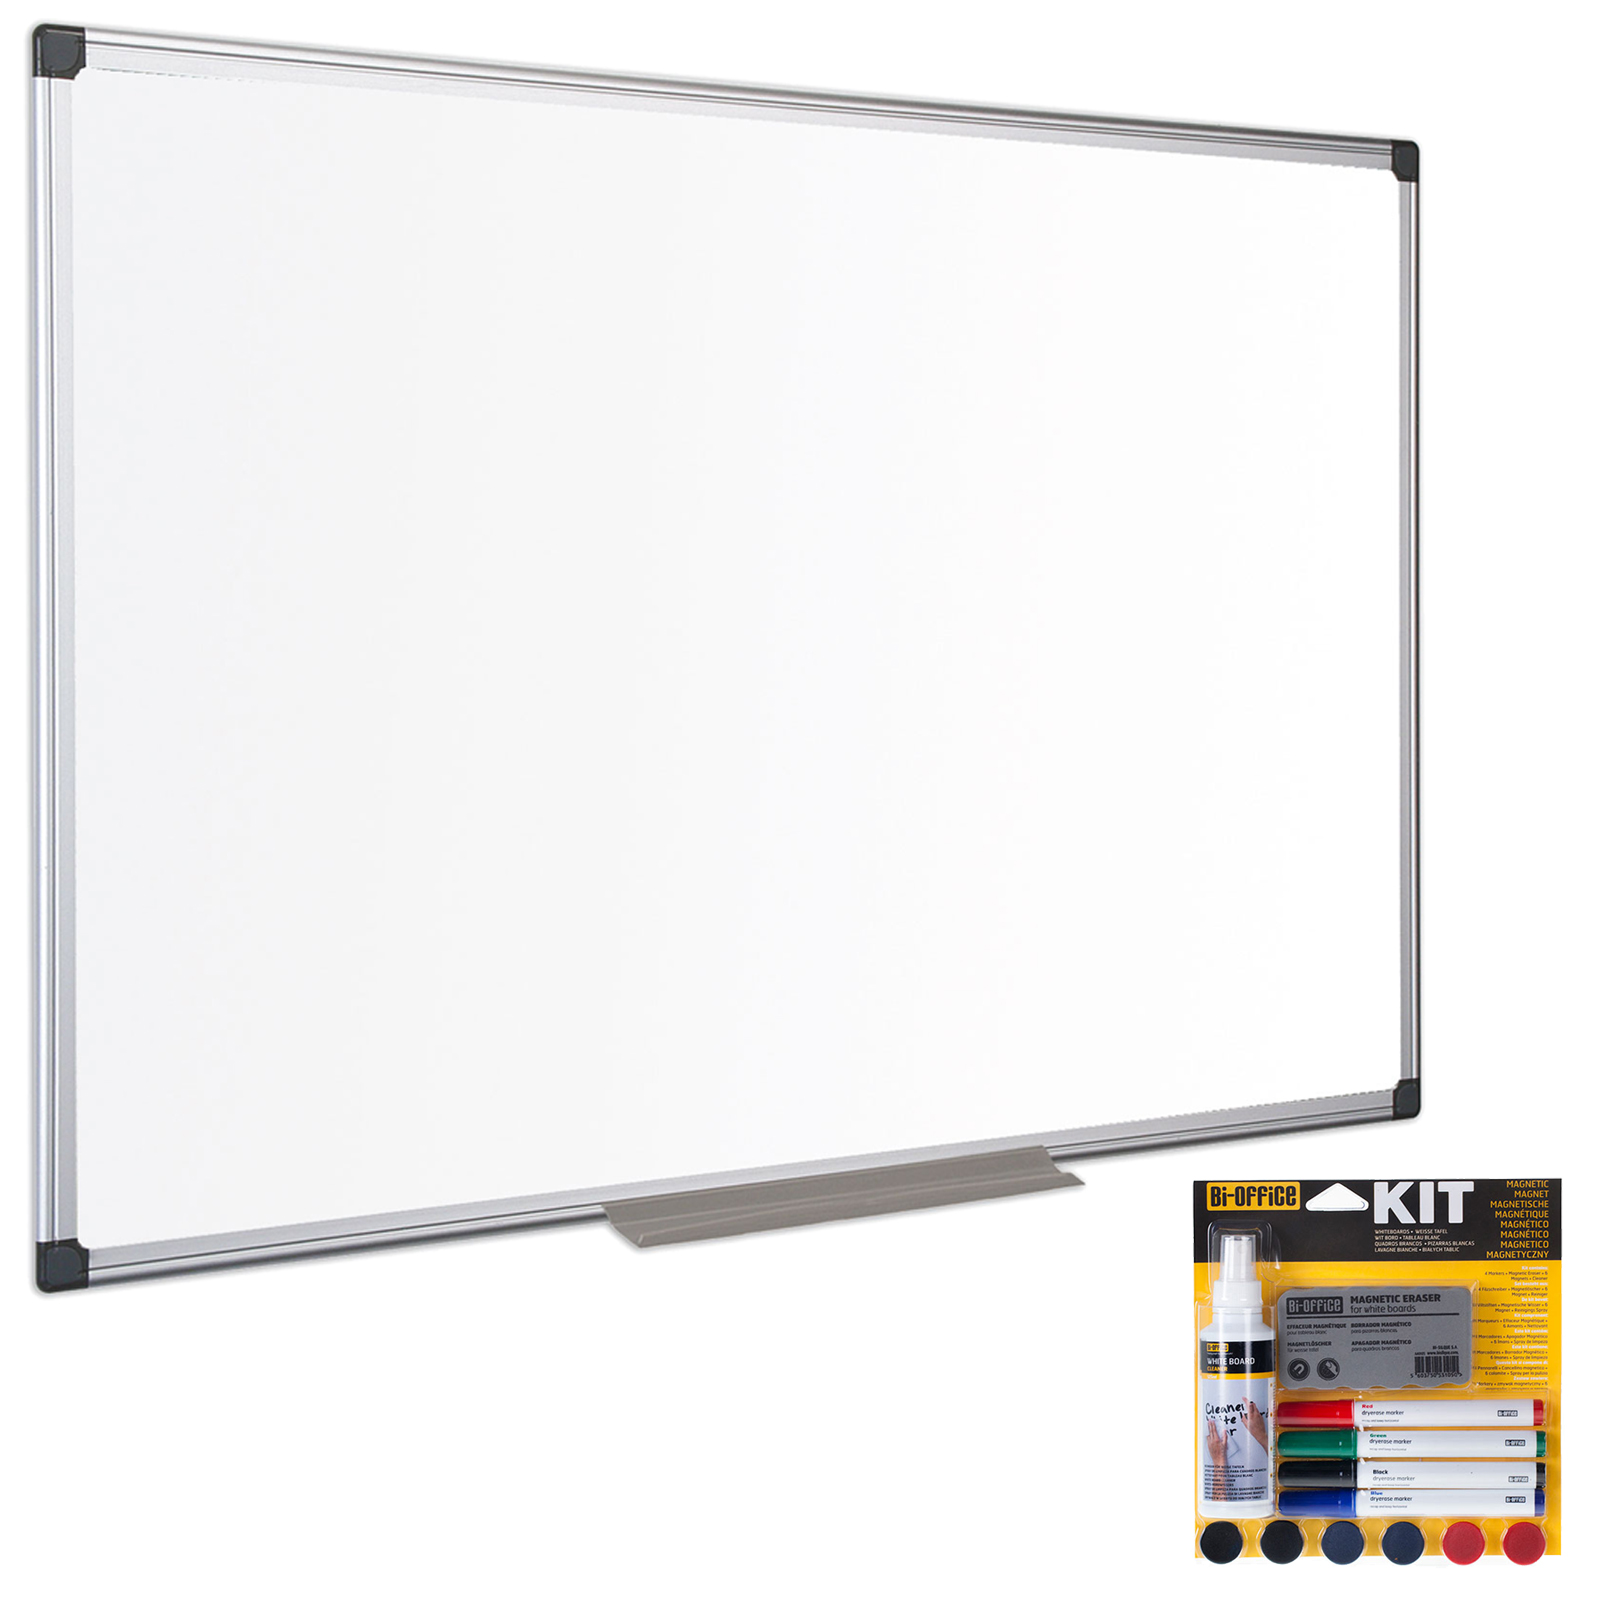 Bi office tableau blanc laqu 120 x 90 cm bi office kit for Tableau magnetique blanc ikea